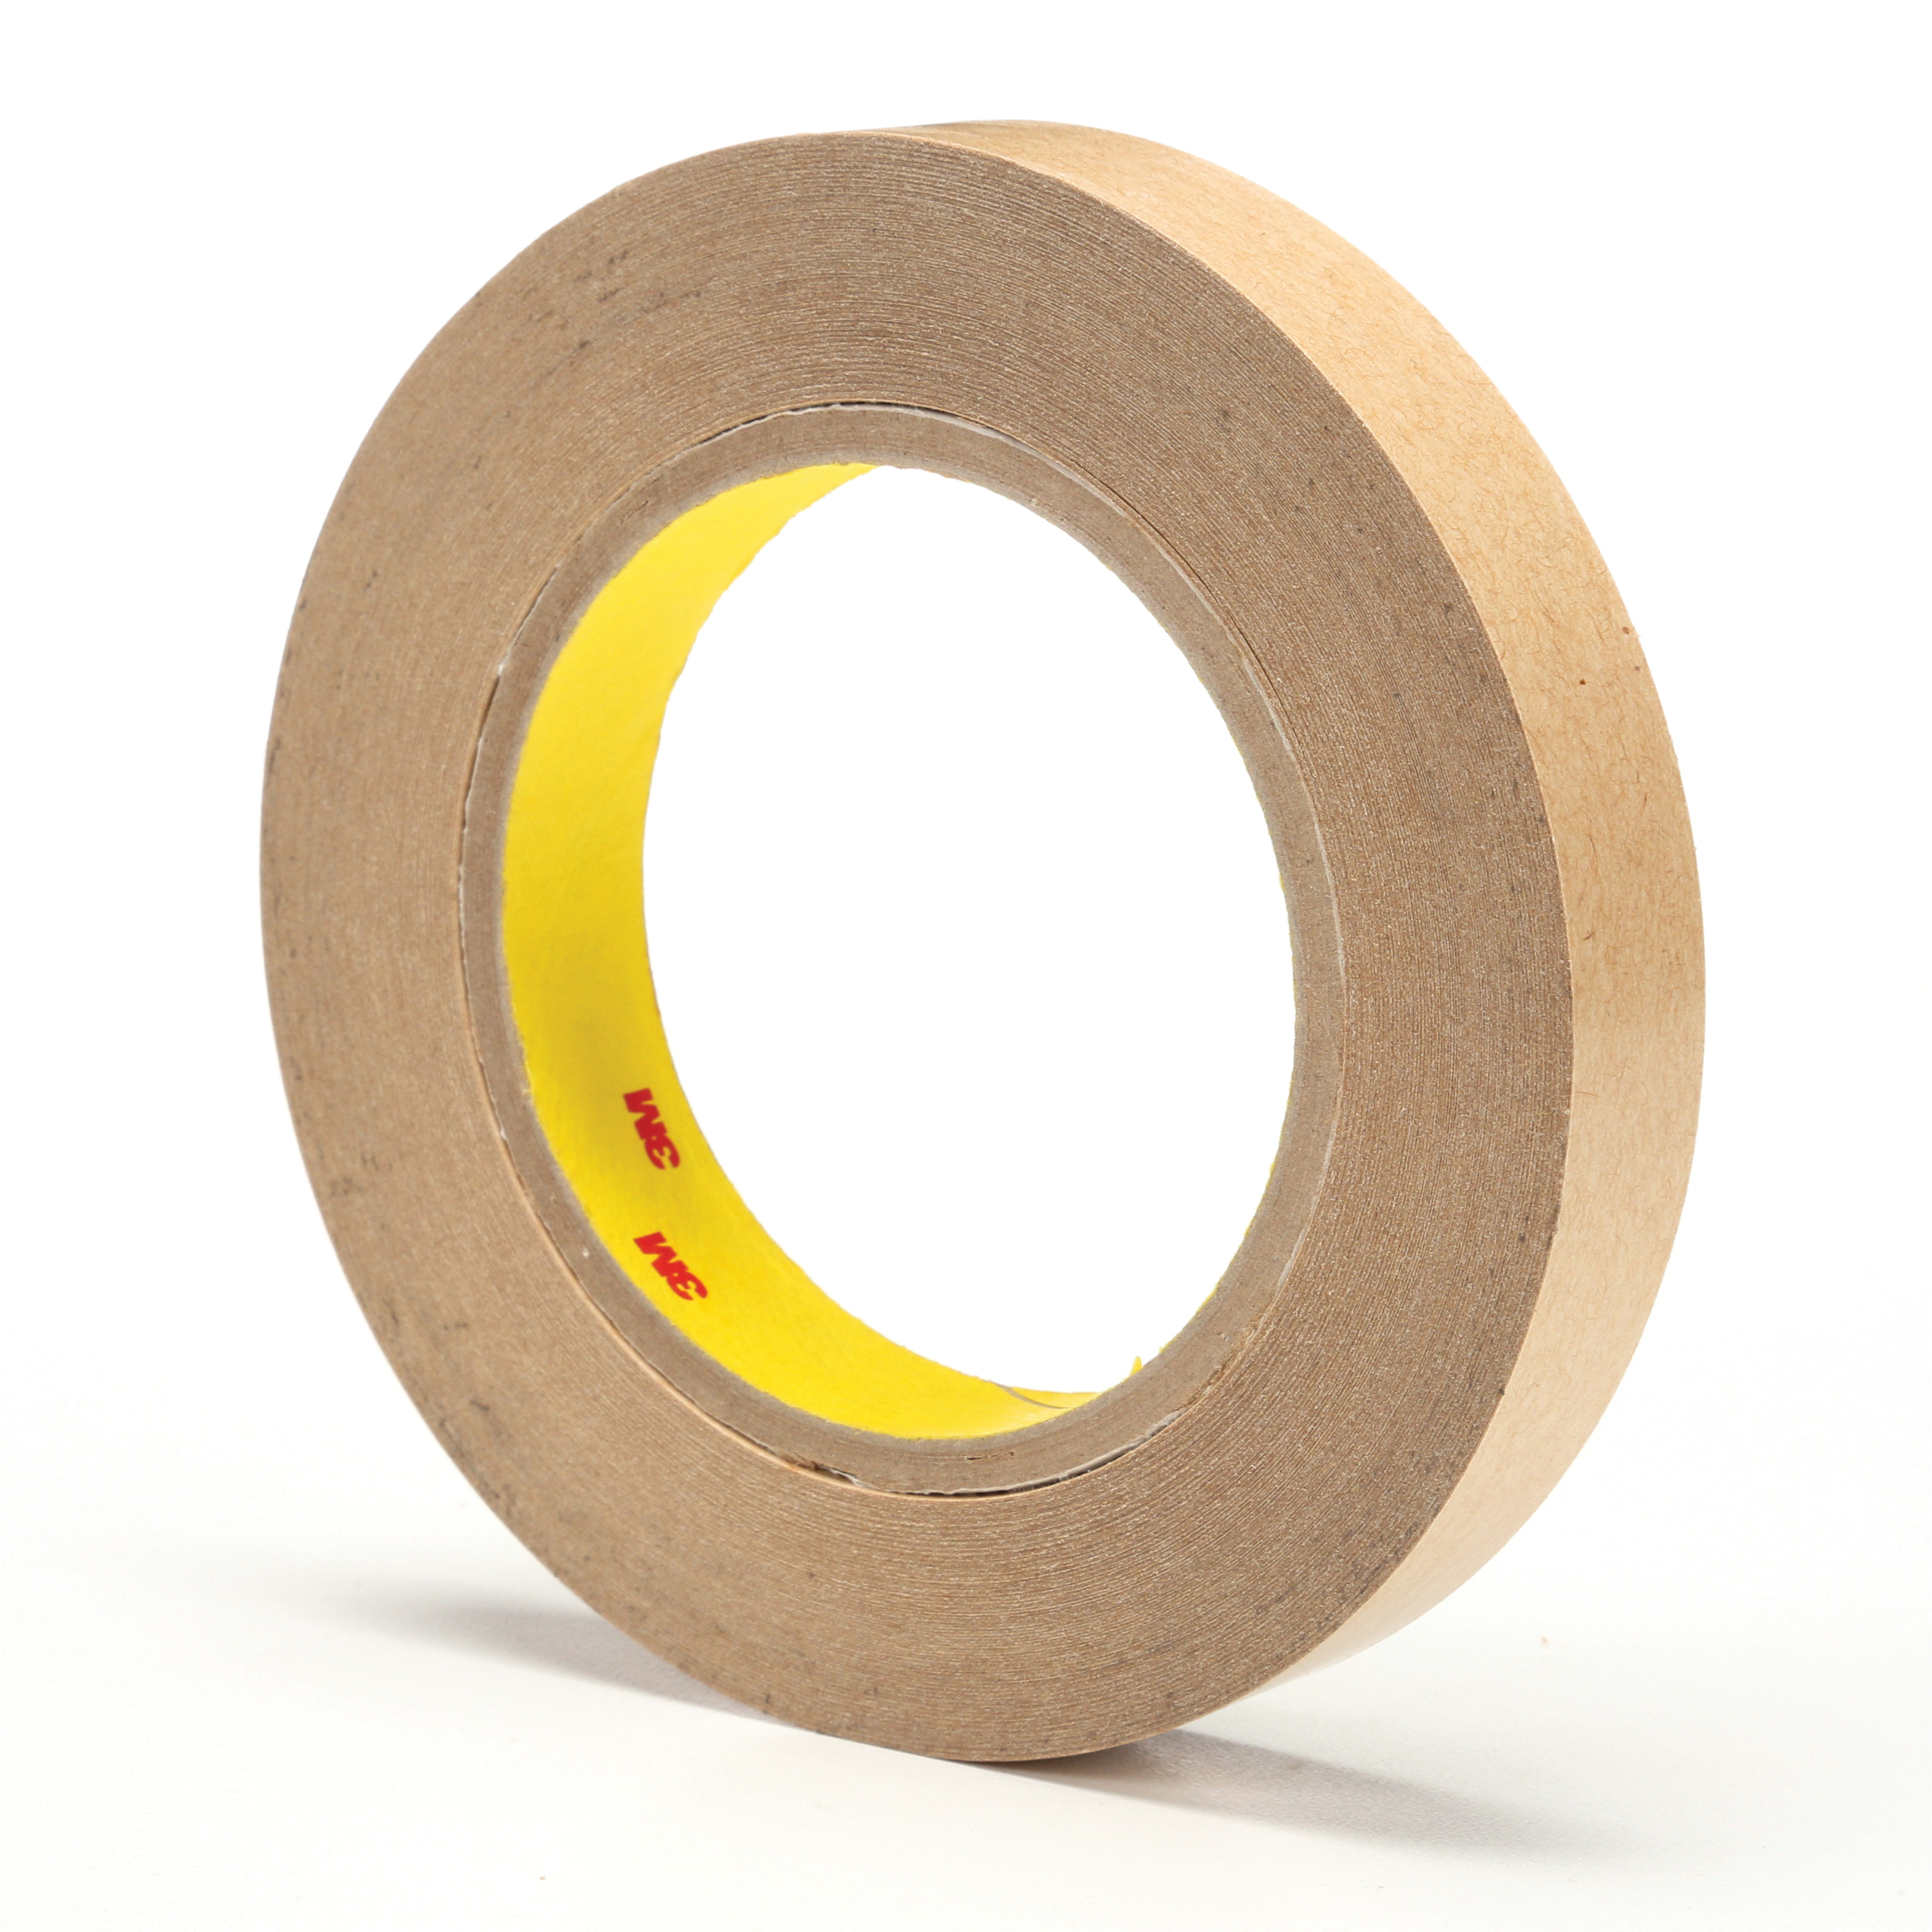 3M™ 021200-03336 Fibered General Purpose Adhesive Transfer Tape, 60 yd L x 3/4 in W, 2 mil THK, 2 mil 400 Acrylic Adhesive, Clear